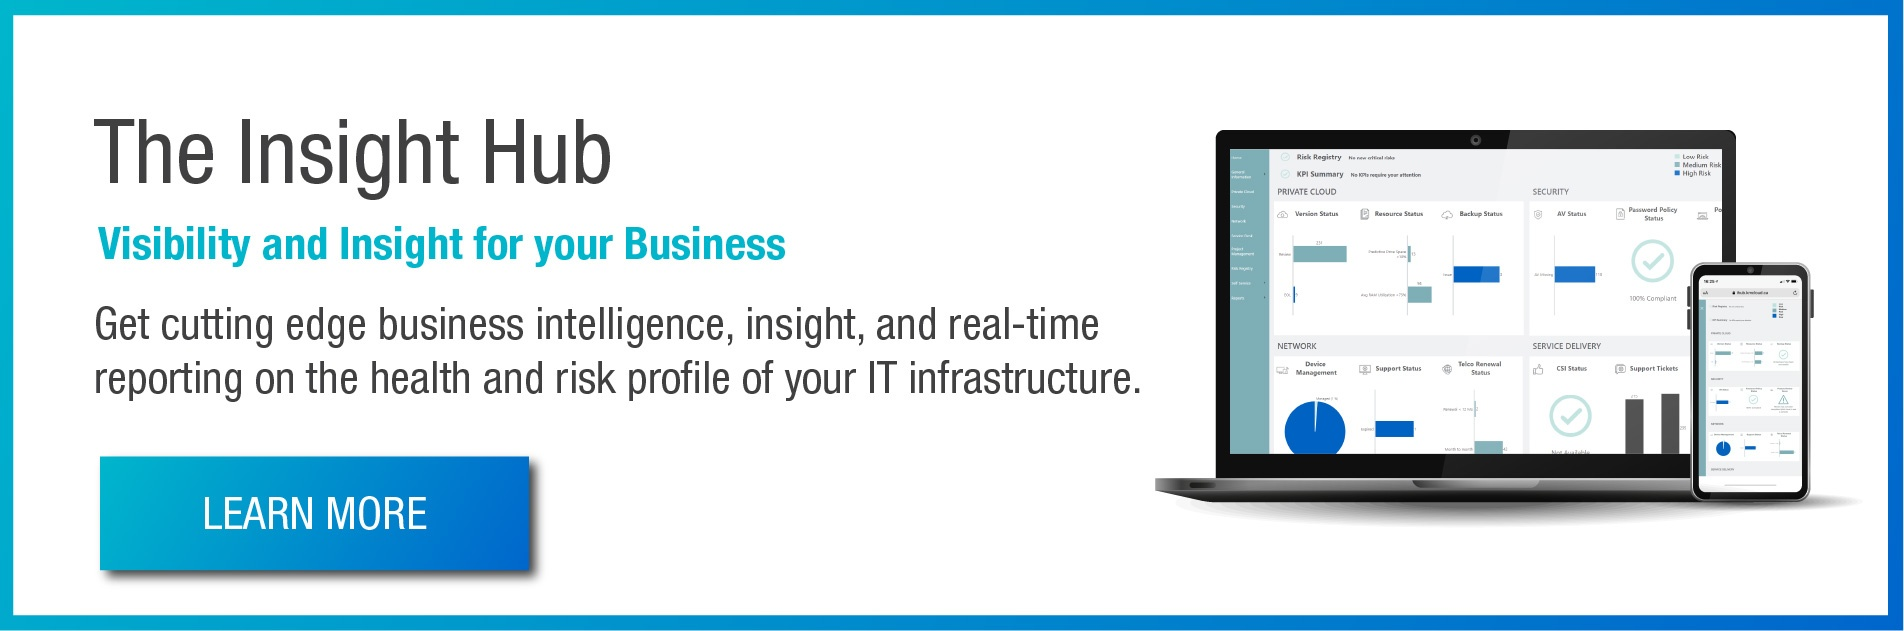 The Insight Hub. Get cutting edge business intelligence, insight, and real-time reporting.